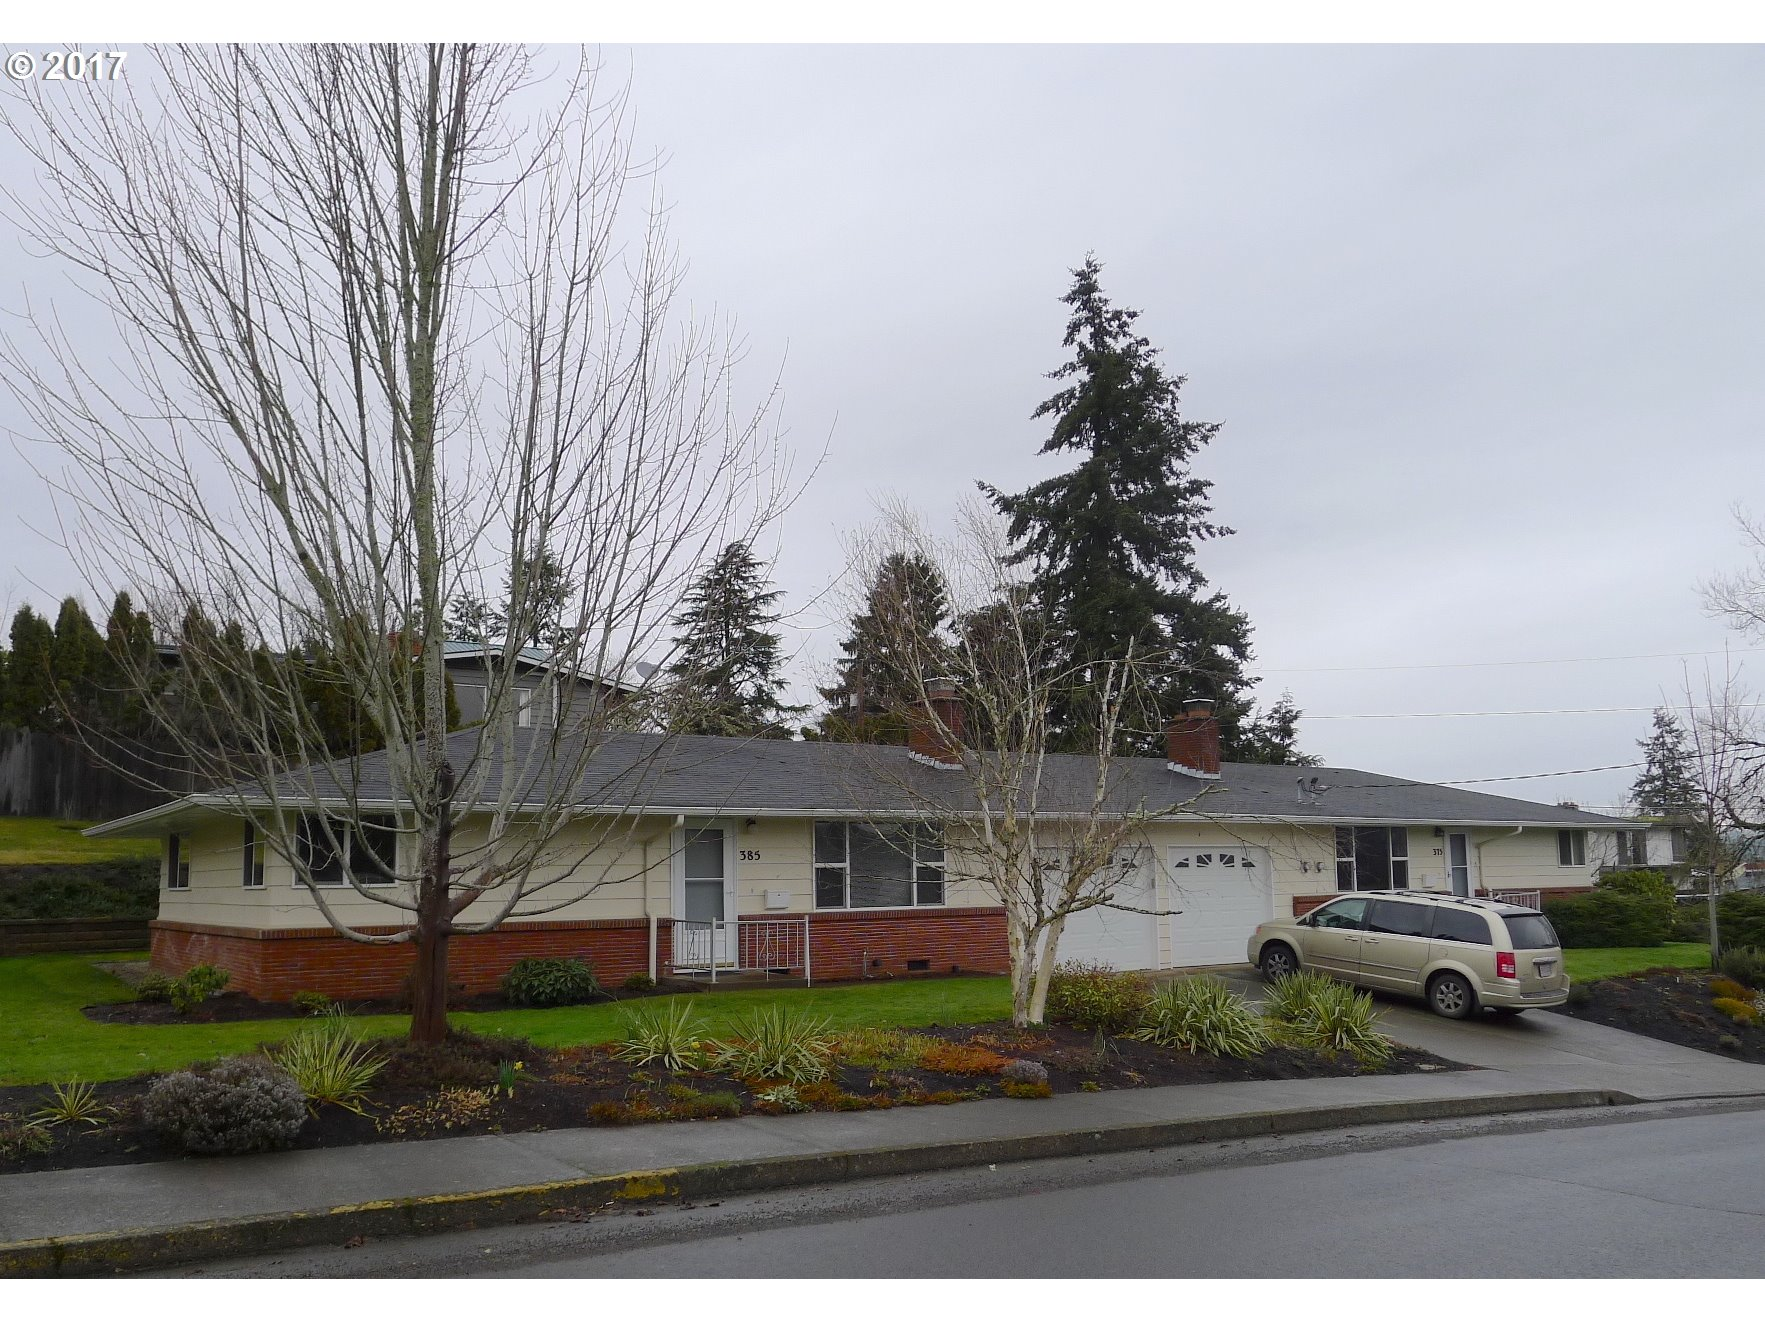 385 W 27TH AVE, Eugene, OR 97405